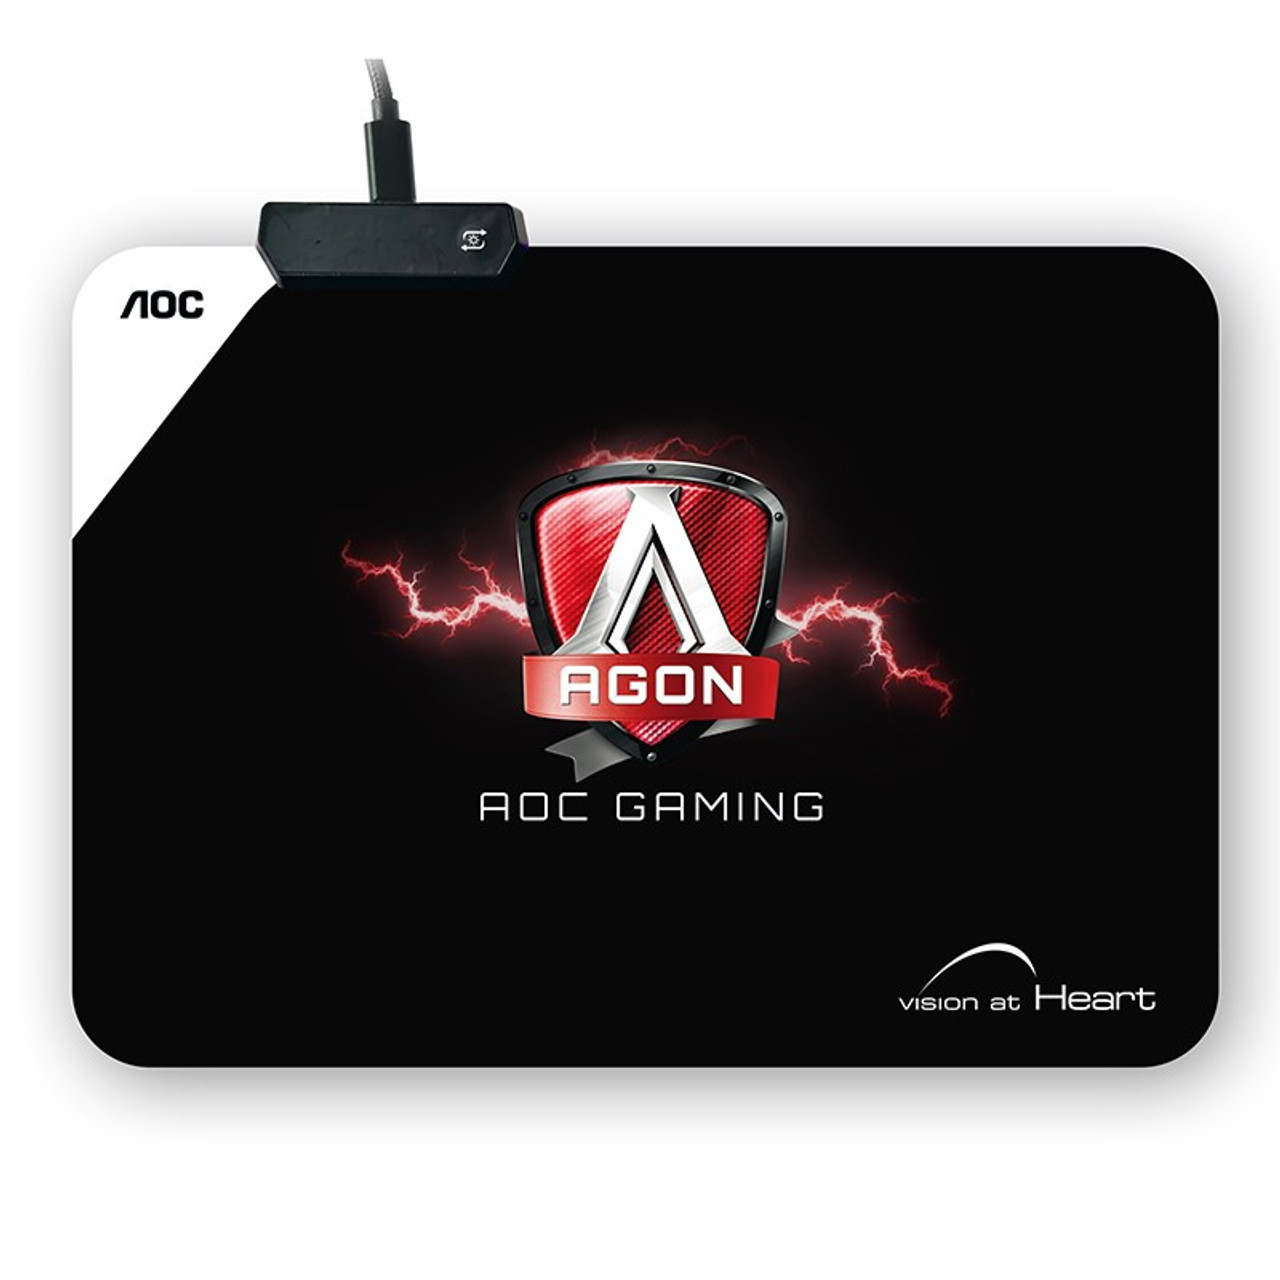 Image for AOC AGON RGB Cloth Gaming Mouse Pad CX Computer Superstore